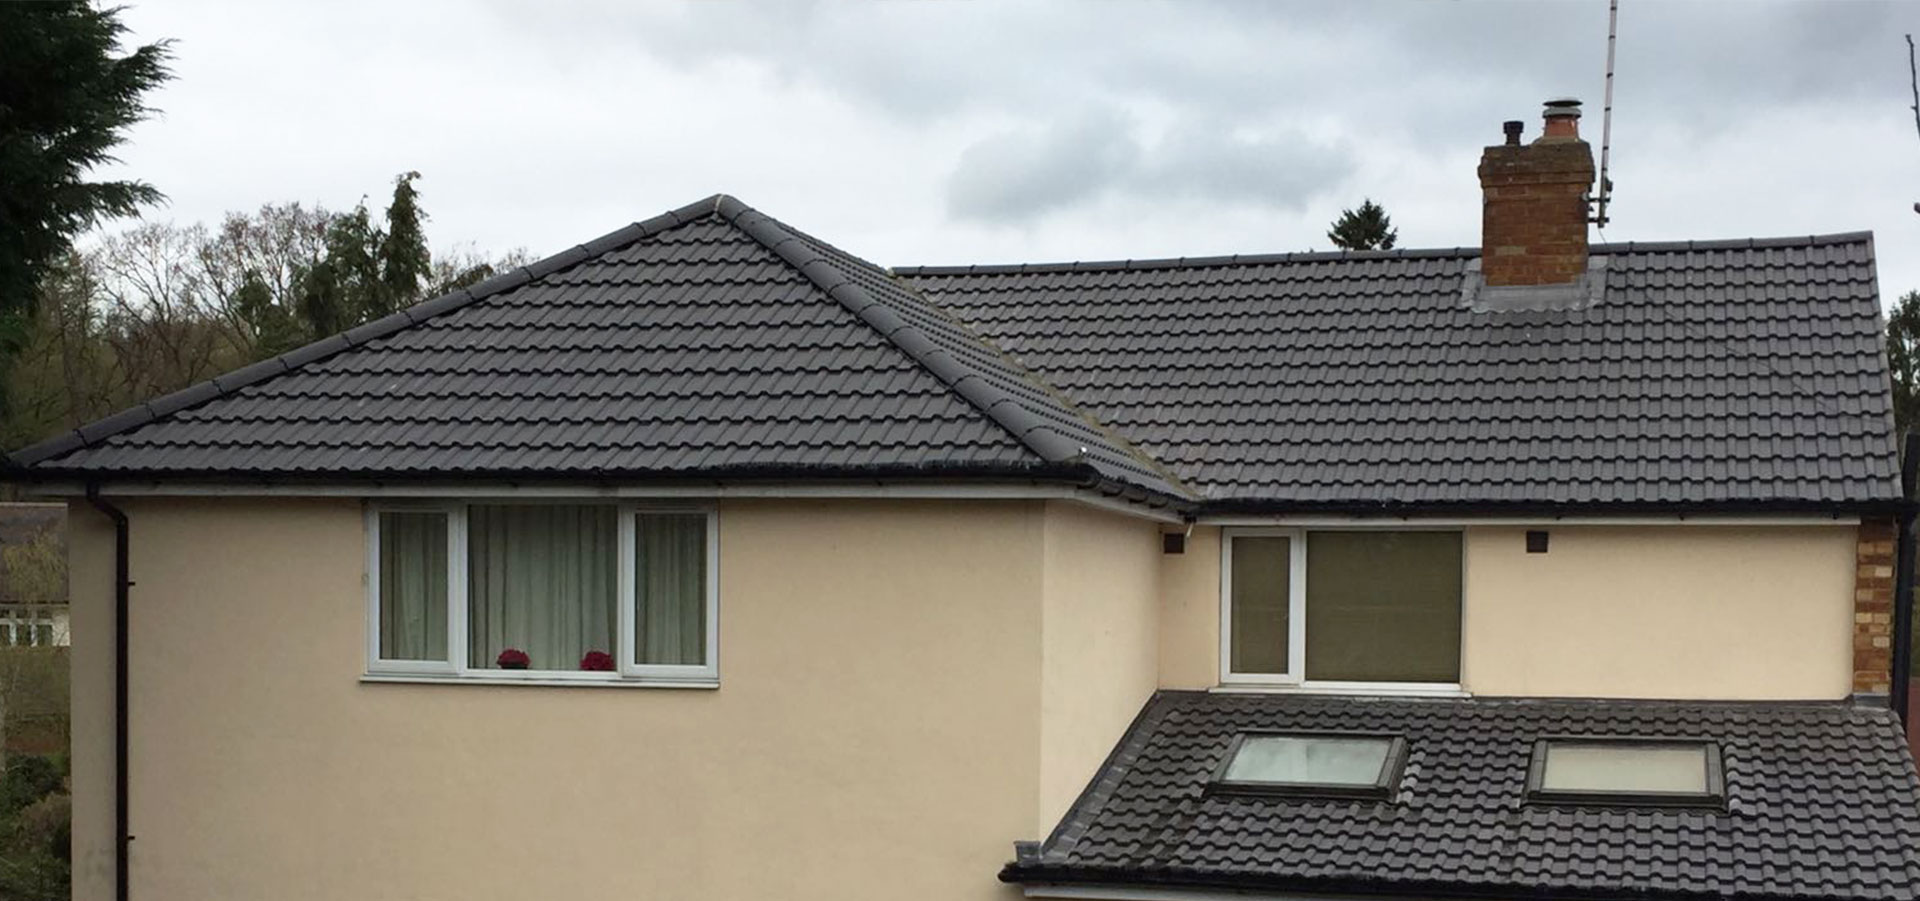 Residential property roofing project